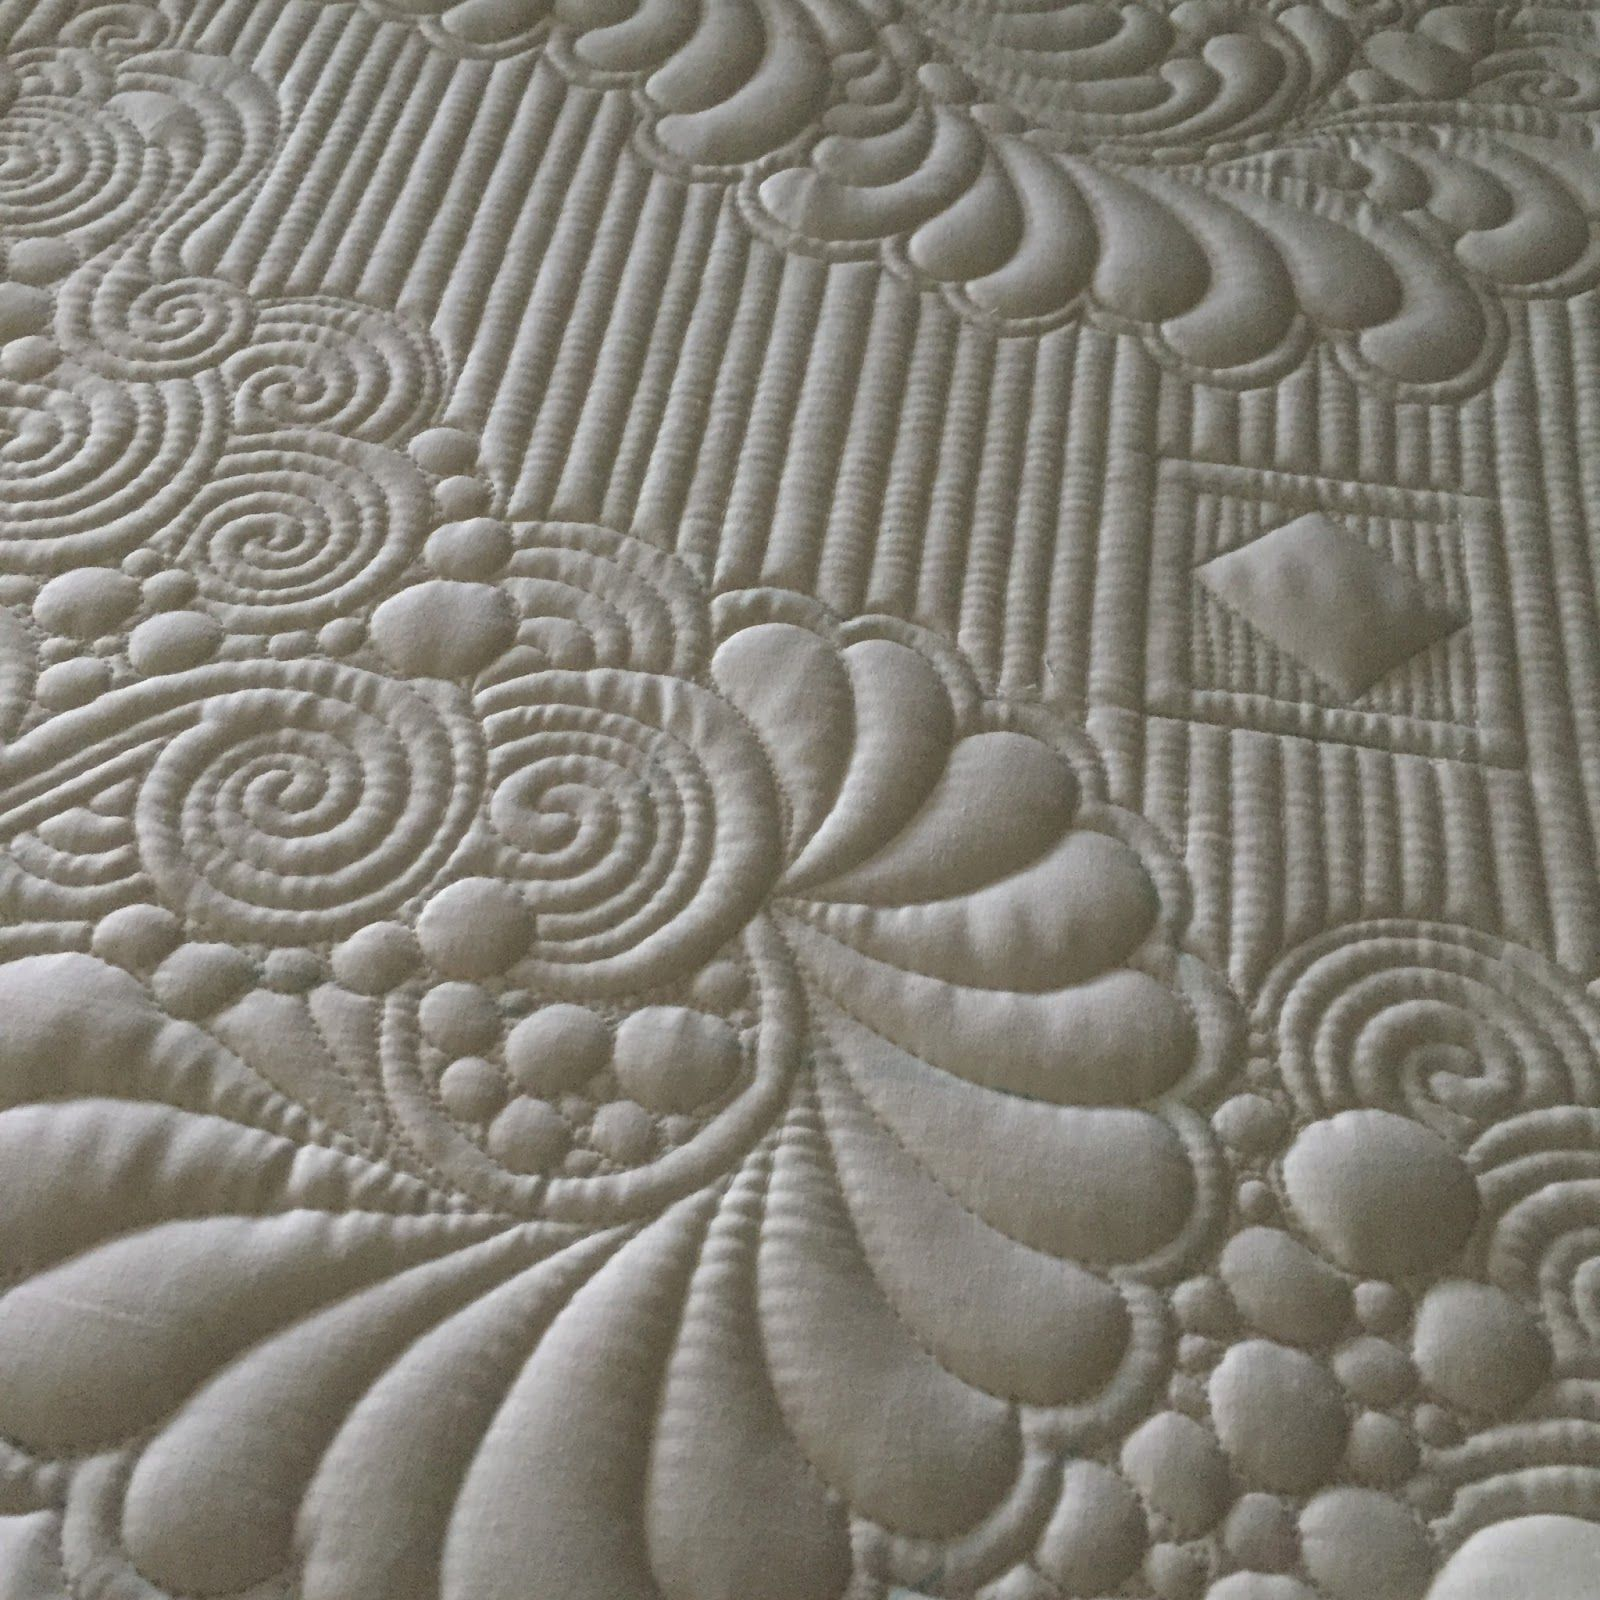 Modern Longarm Quilting Services | Quilting | Pinterest | Quilting ... : machine quilting services - Adamdwight.com